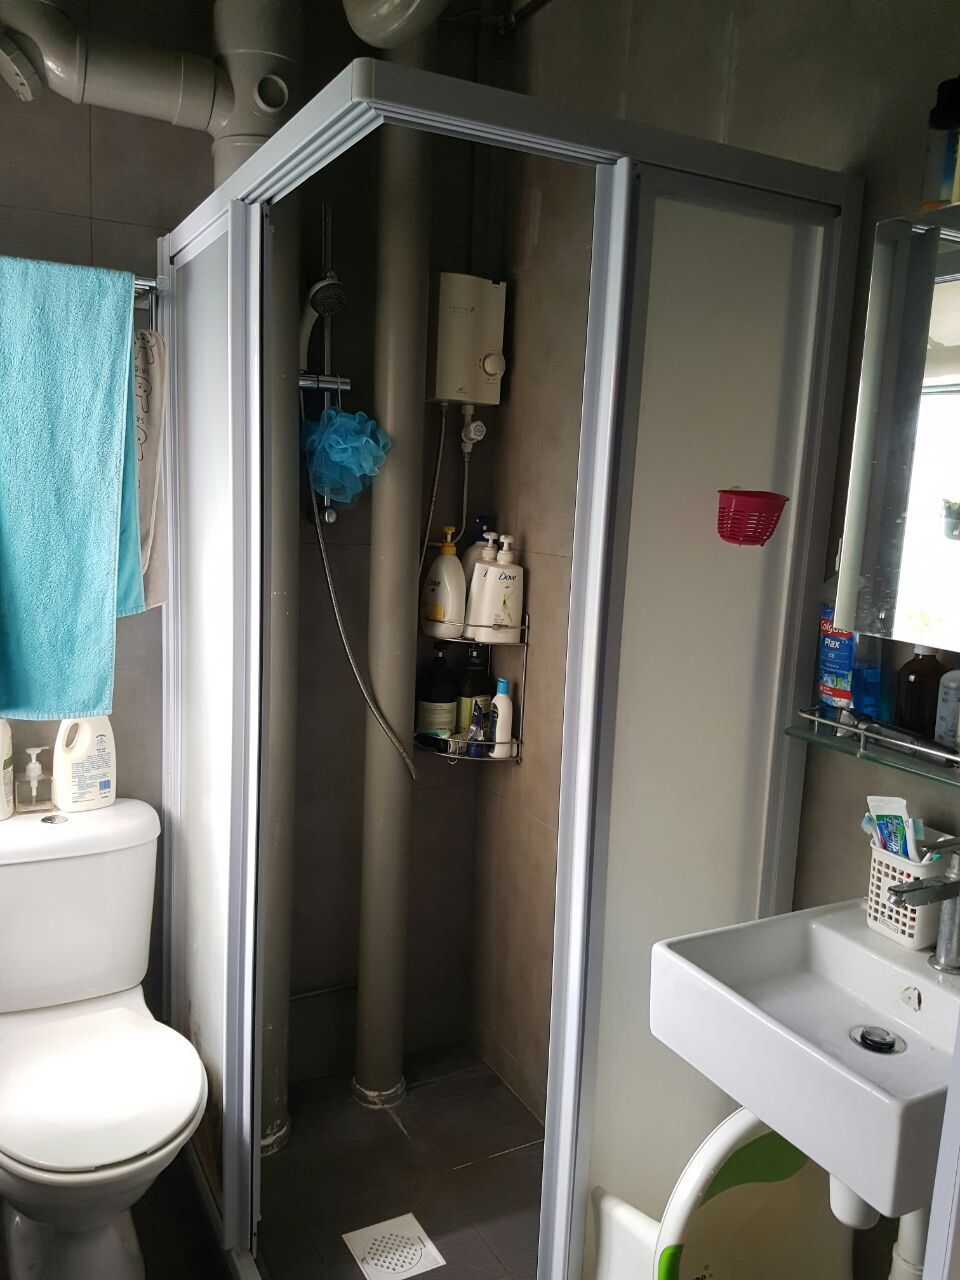 Toilet Shower Screen Toilet Amp Bathroom Renovation Singapore